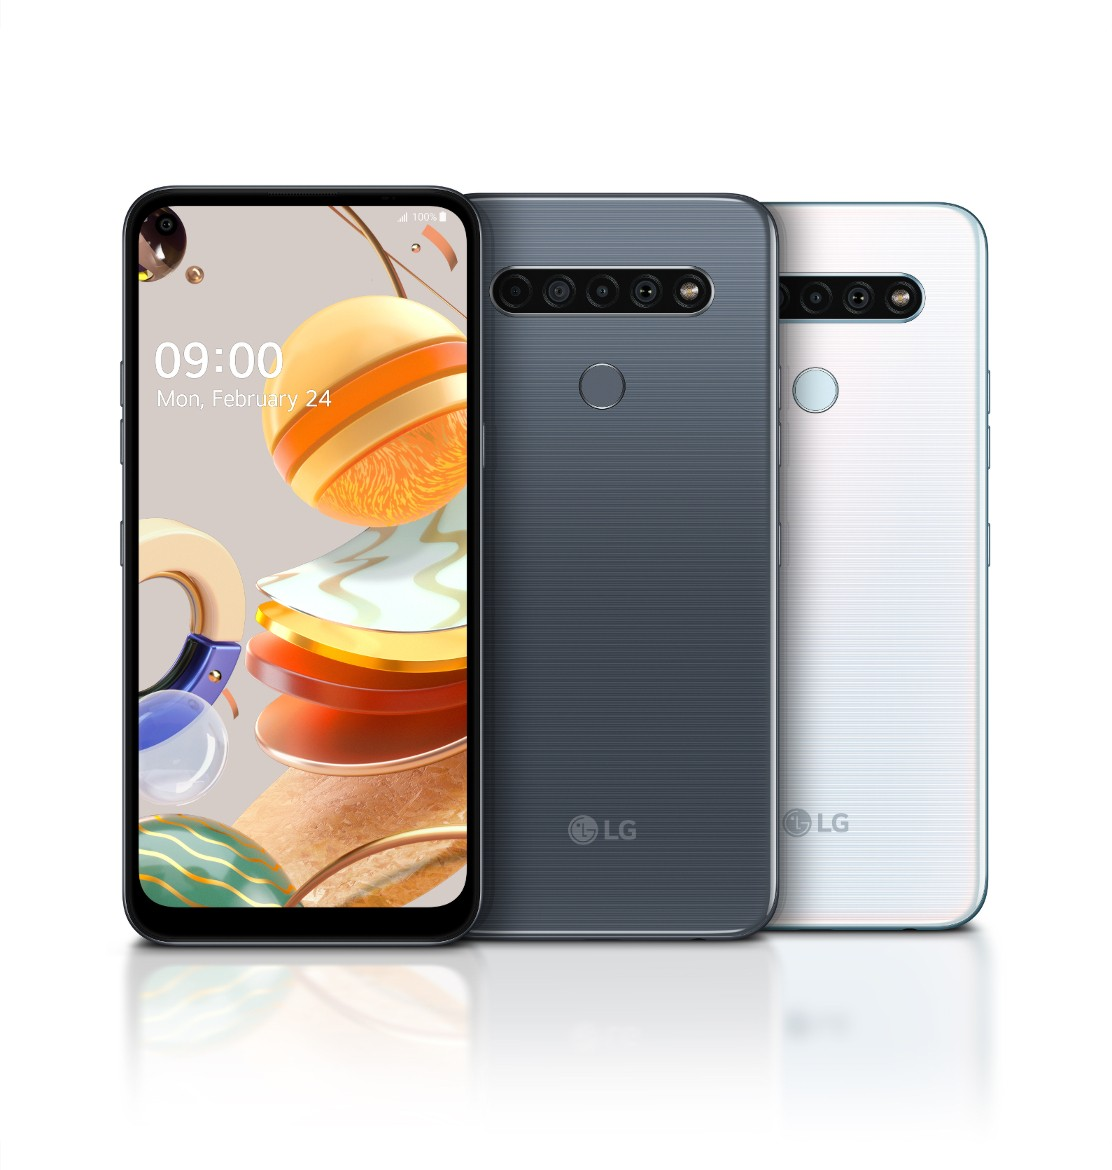 The front and rear view of the LG K61 in Titanium and White